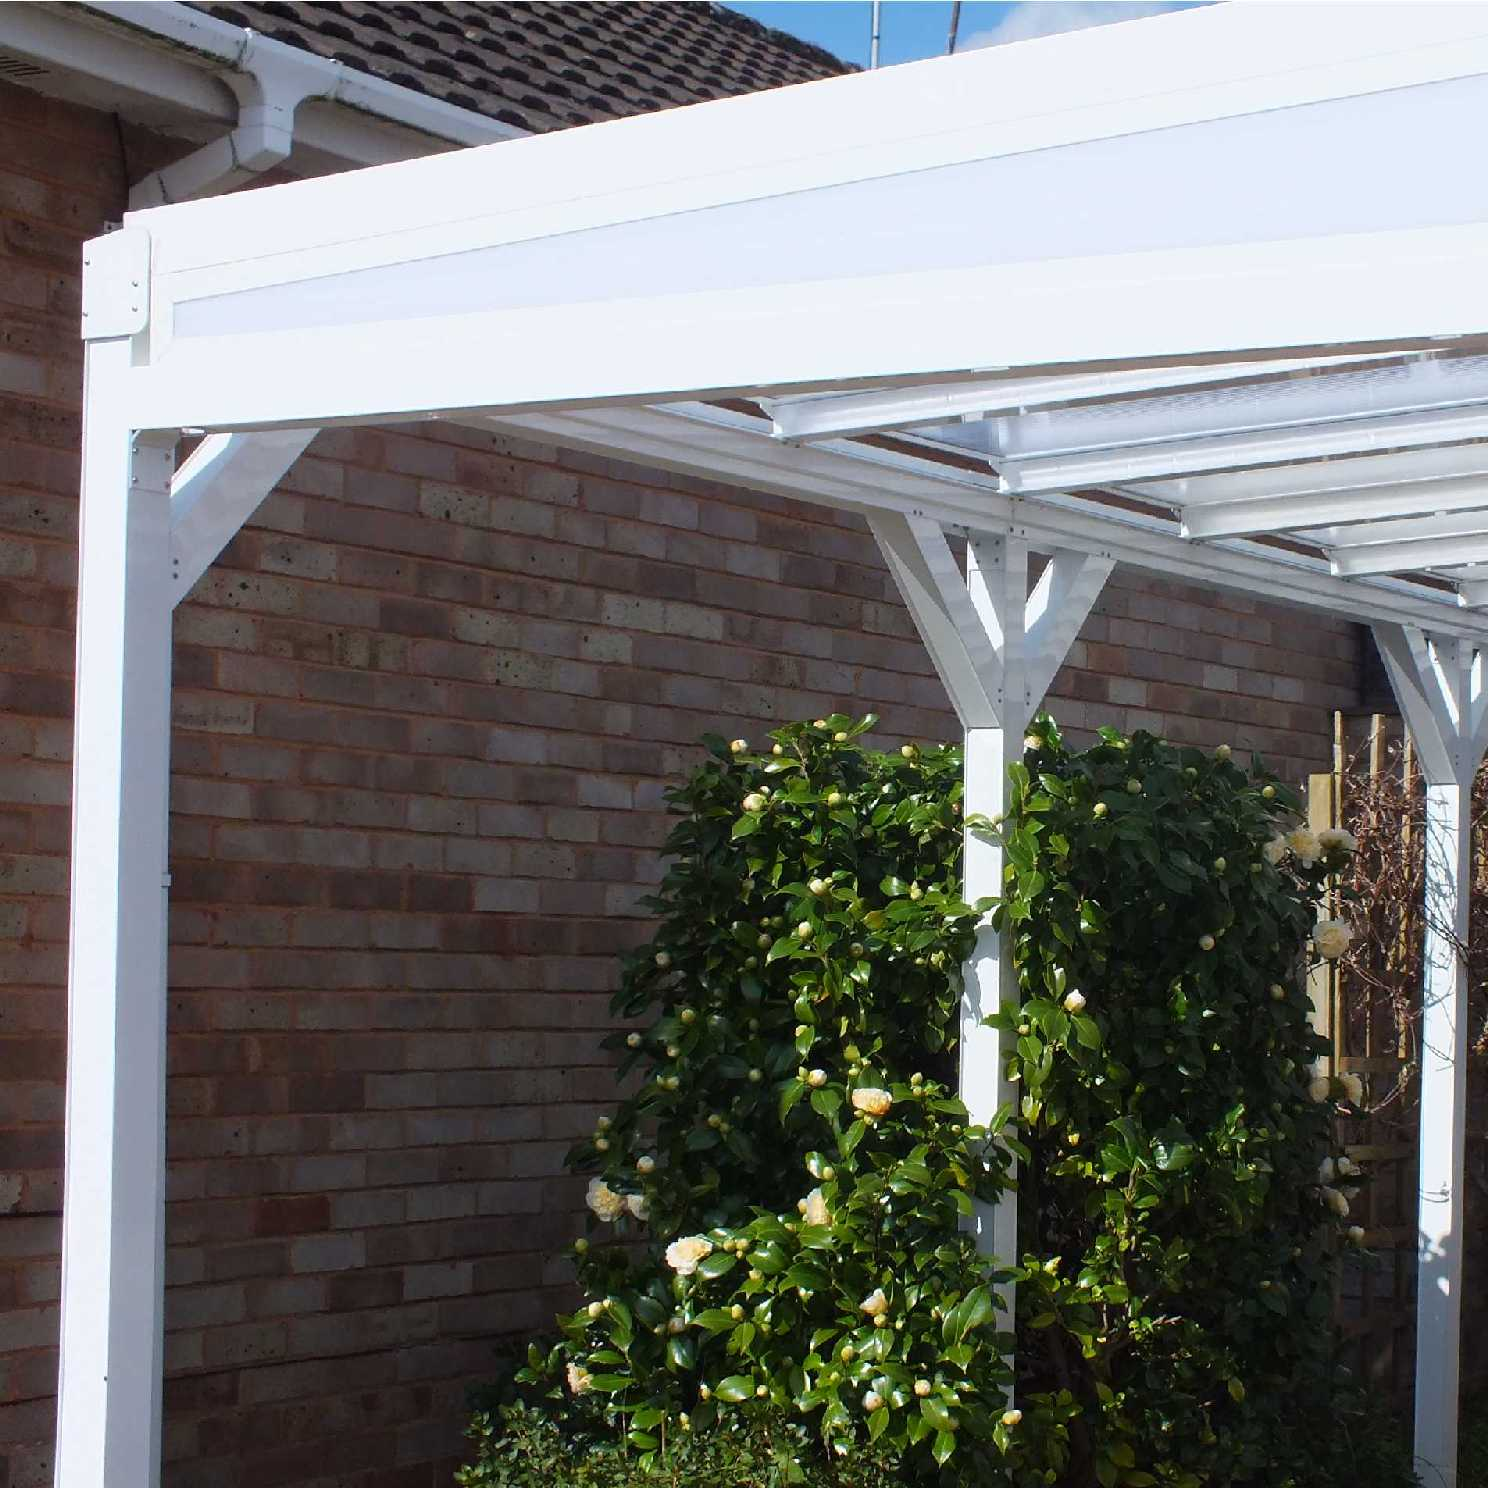 Omega Smart Lean-To Canopy with 16mm Polycarbonate Glazing - 9.5m (W) x 1.5m (P), (5) Supporting Posts from Omega Build